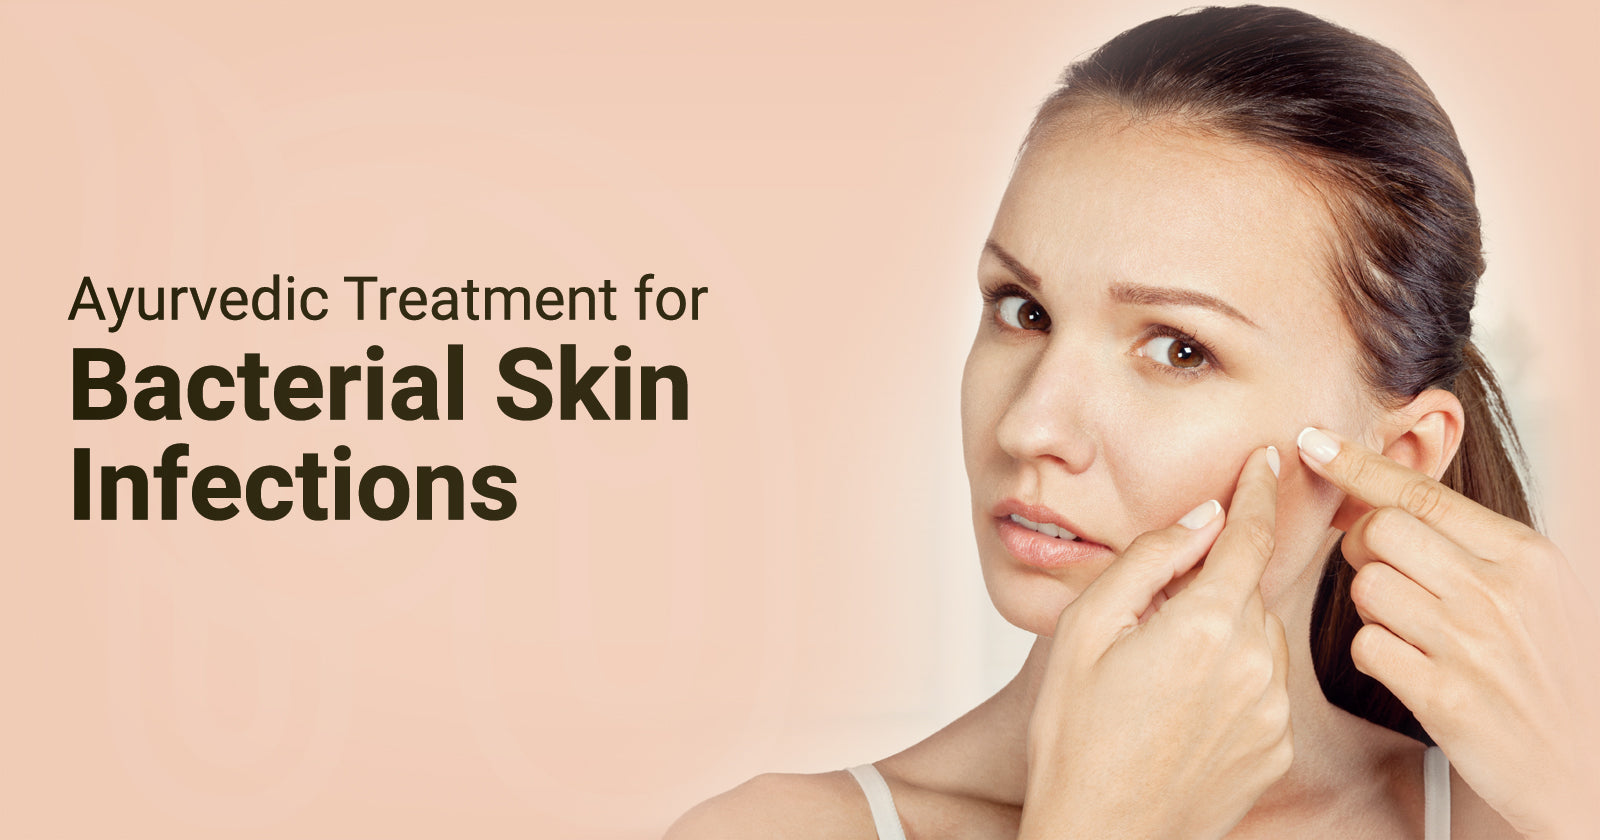 Ayurvedic Treatment for Bacterial Skin Infections